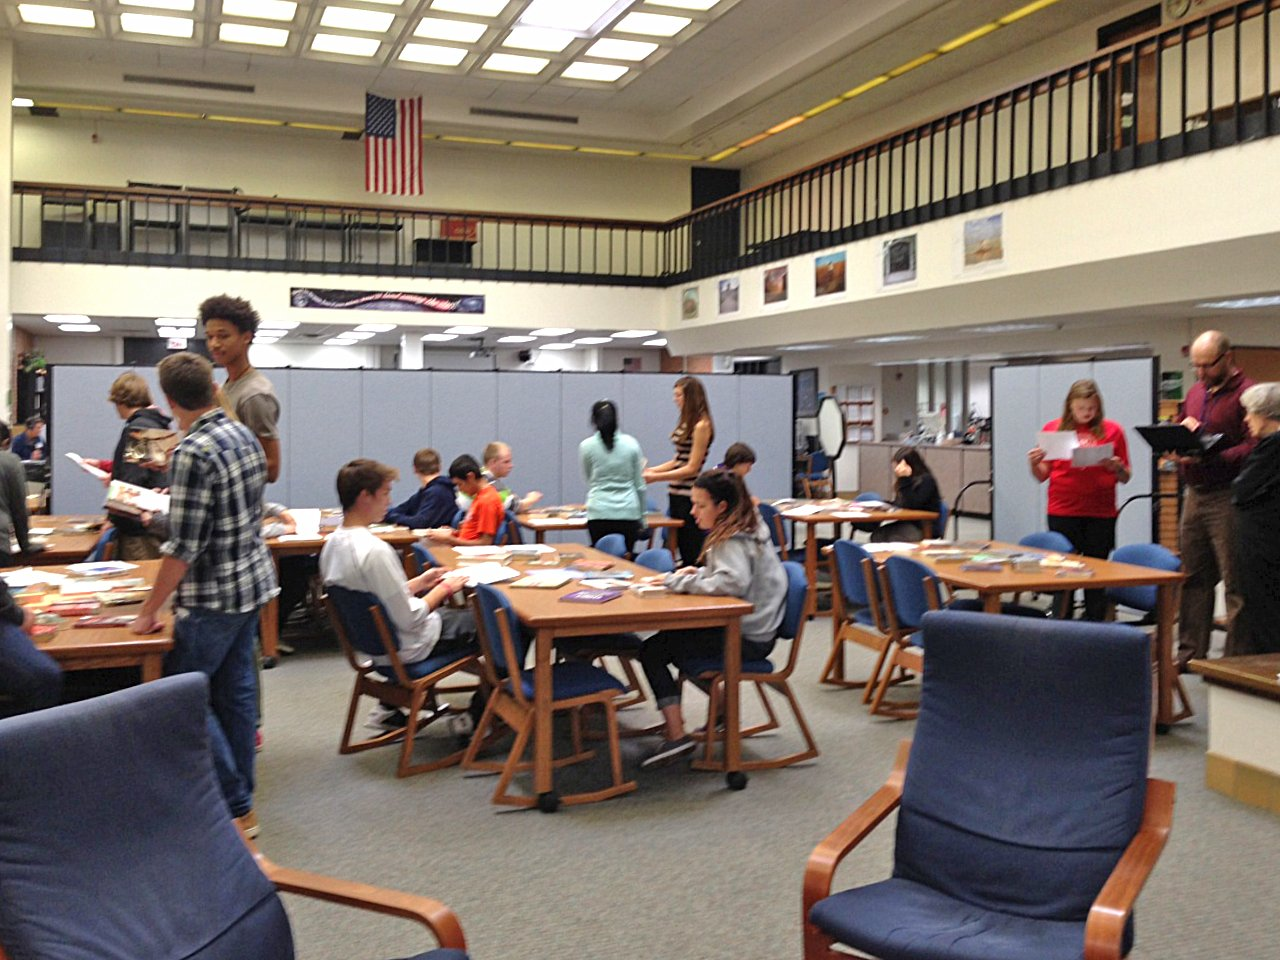 Students work on projects in a high school library classroom made with Screenflex Portable Room Dividers.